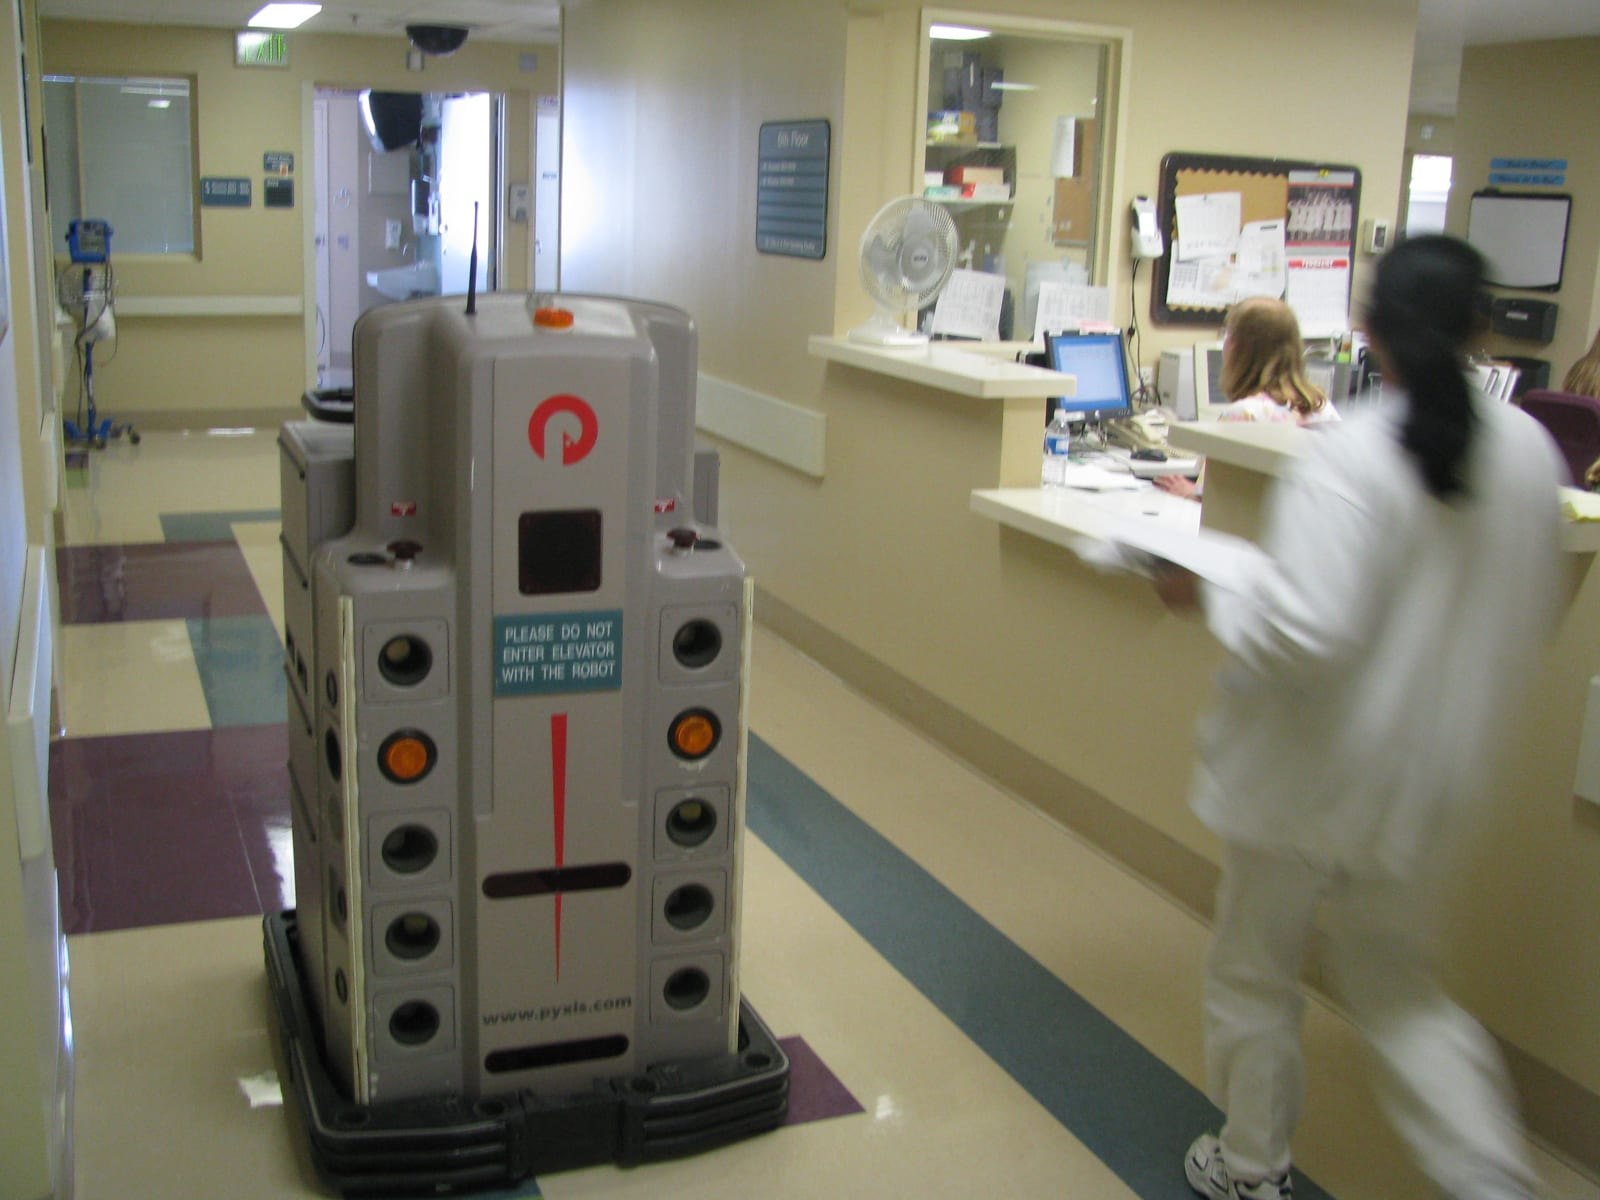 20080213195424!Pyxis_Pharmacy_Robot_by_Nurse_Station